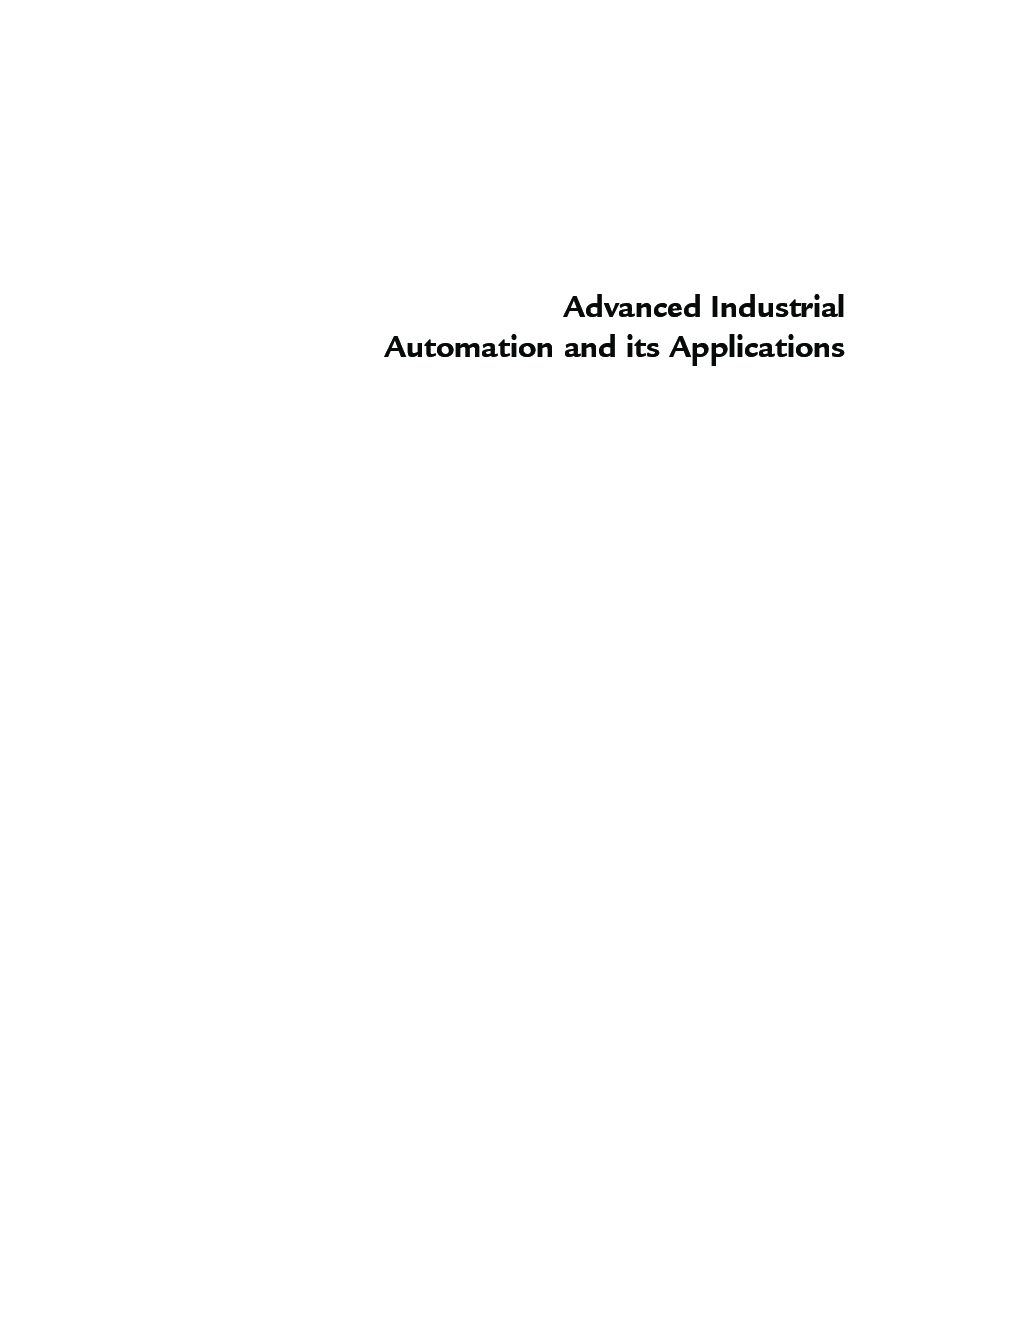 Advanced Industrial Automation And Its Applications - Page 3